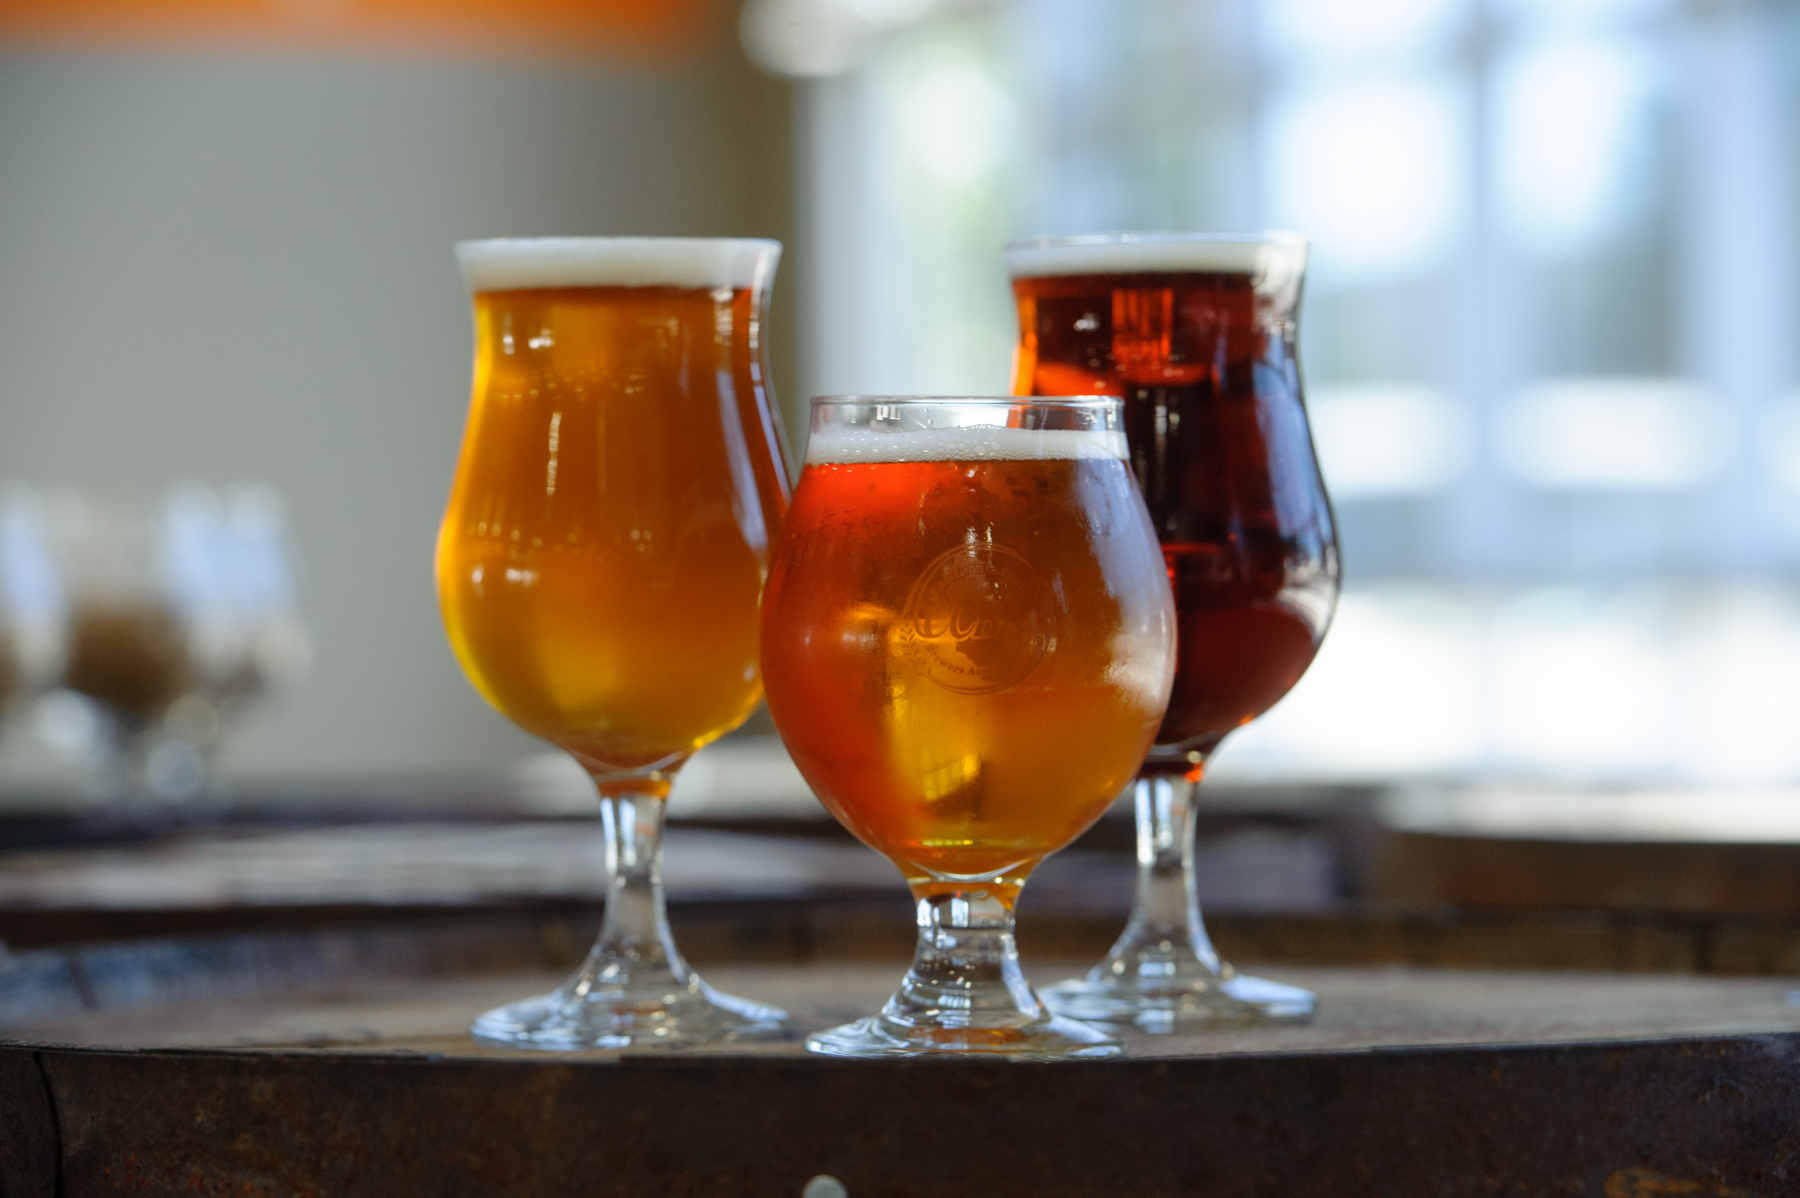 At the Summit: What Sours Do You Have on Tap?